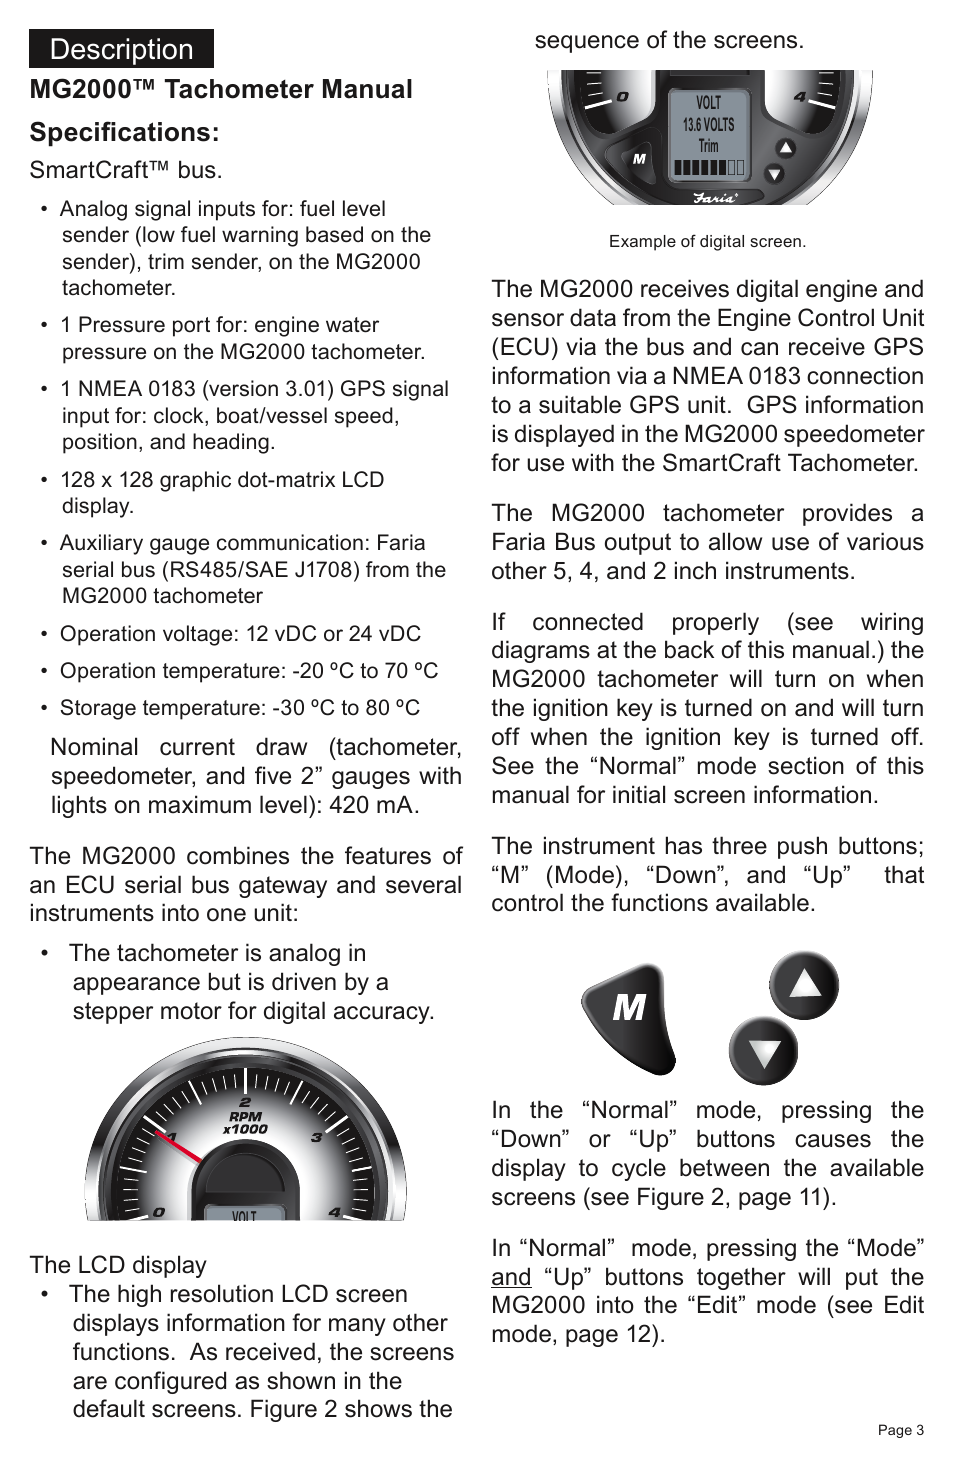 Description, Mg2000™ tachometer manual specifications | Faria Instruments  SMARTCRAFT MG2000 User Manual | Page 9 / 60